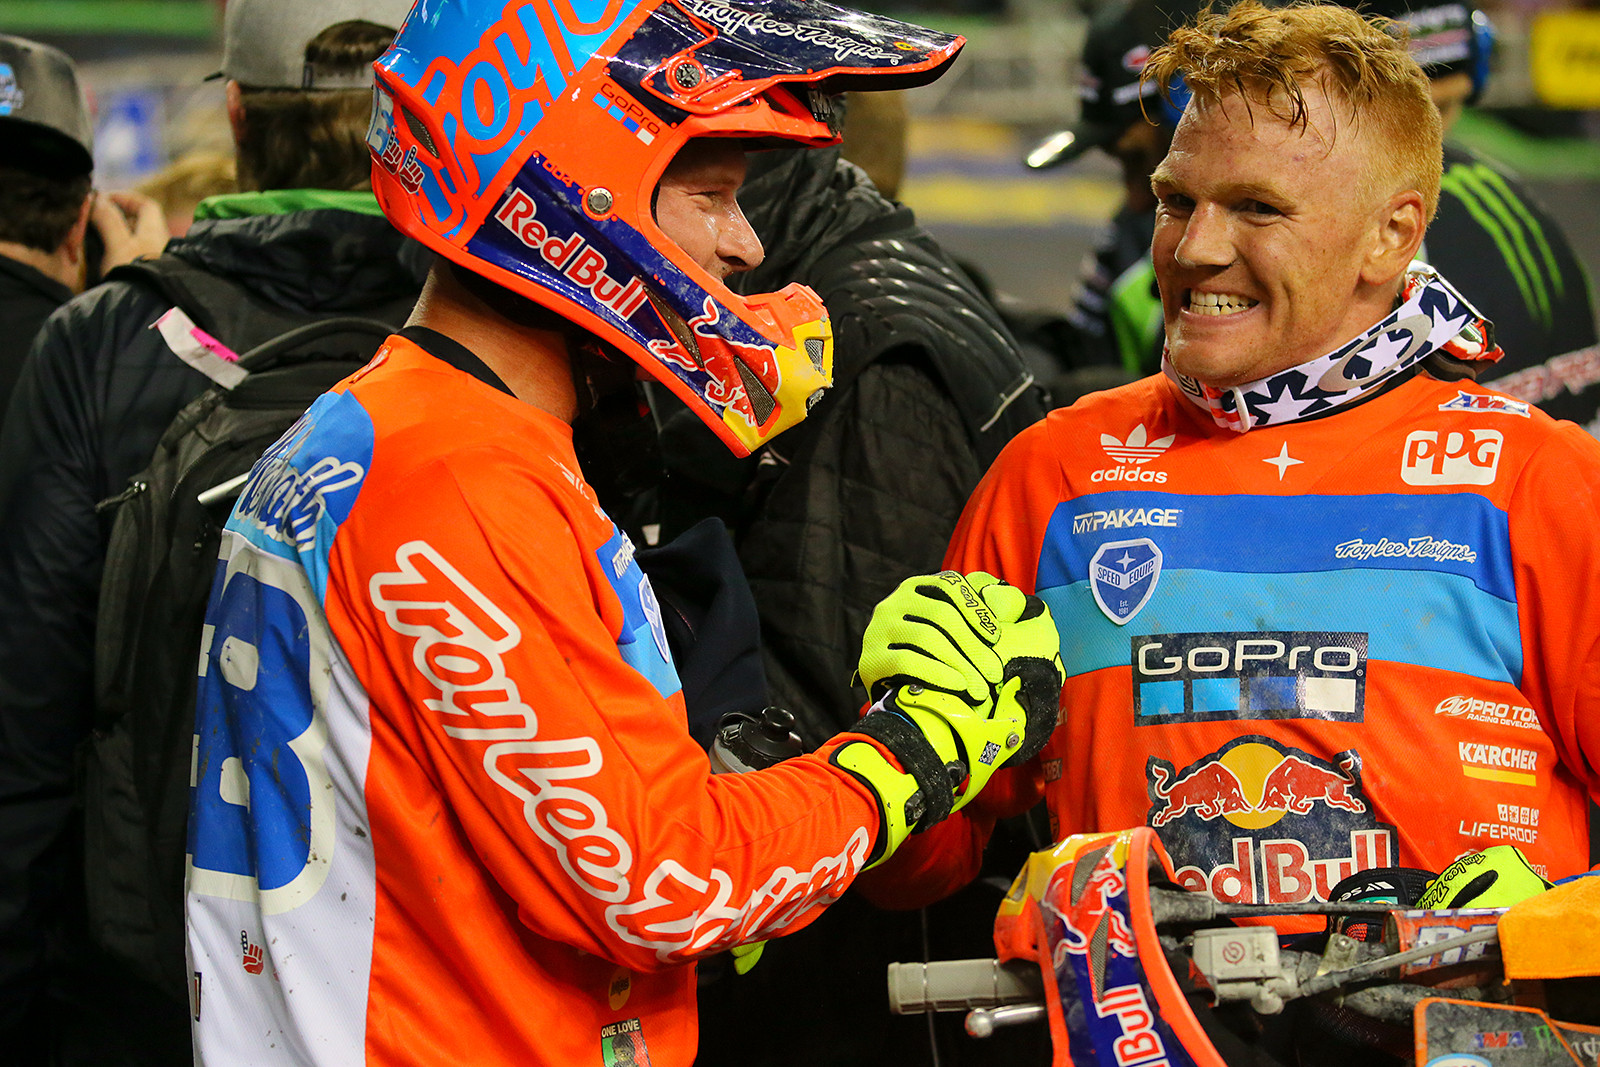 Do you think Mitchell Oldenburg (right) was pumped with his first podium?